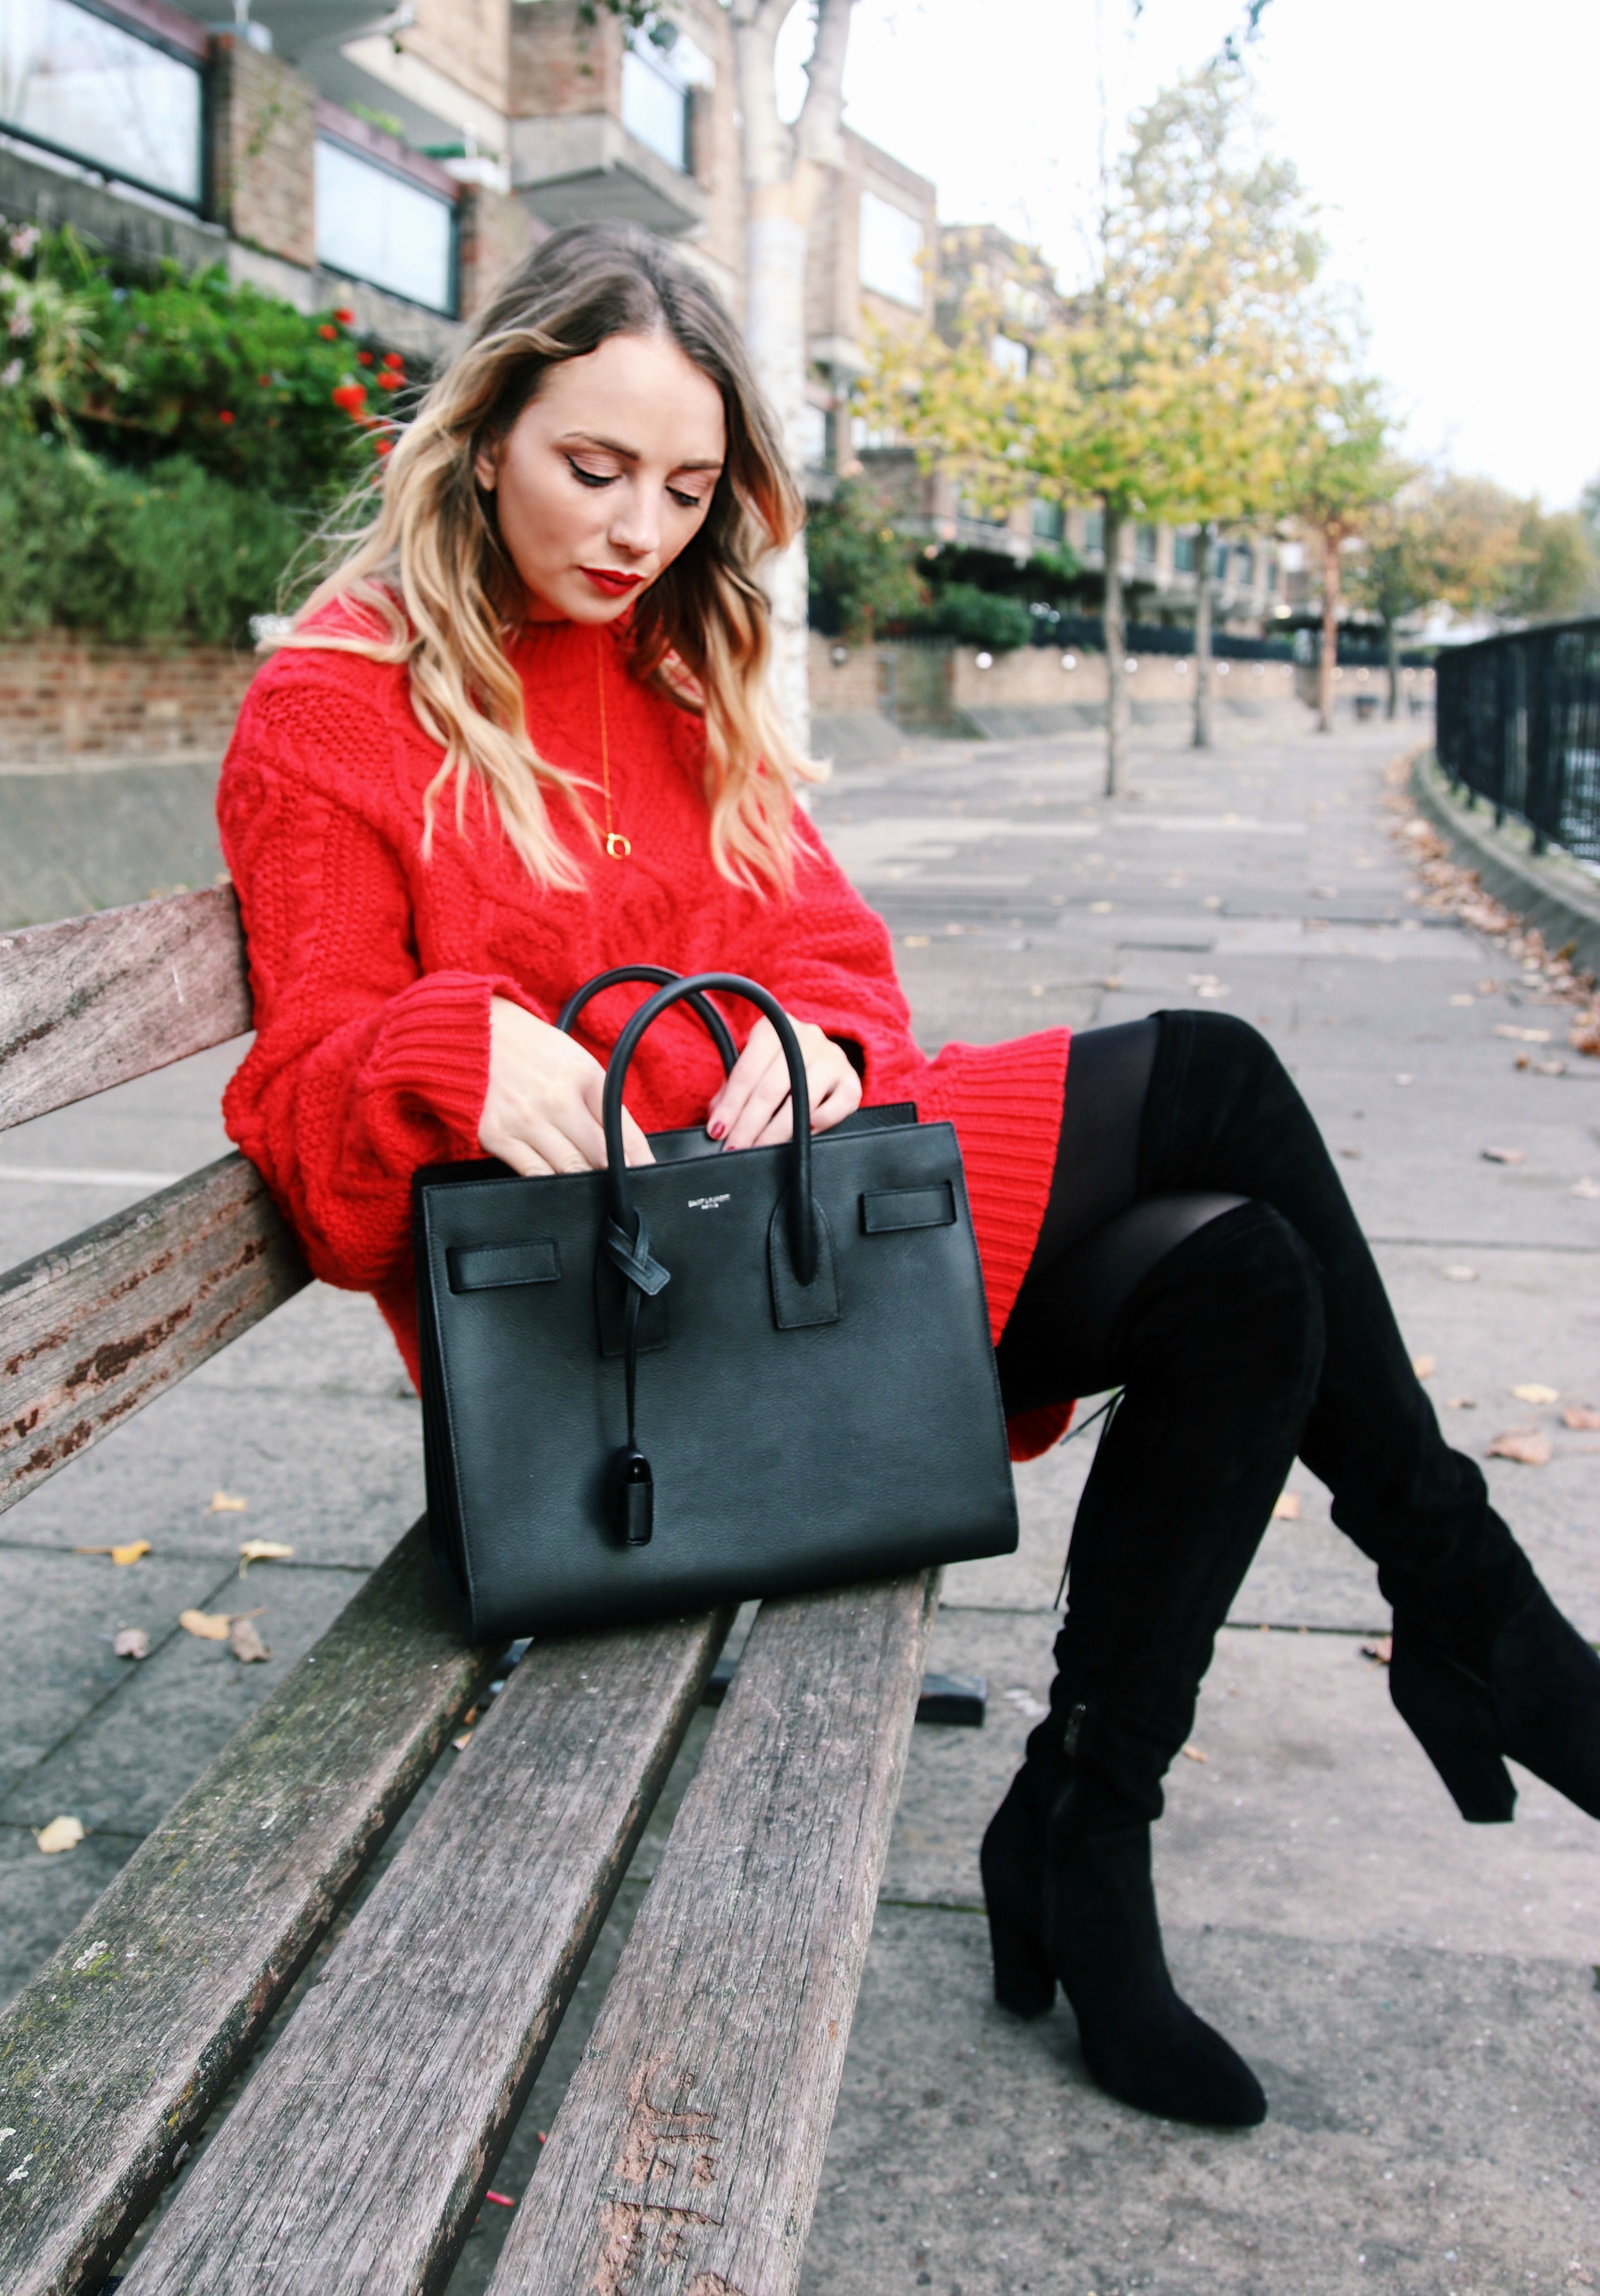 Saint Laurent Sac de Jour - London Lifestyle Blogger